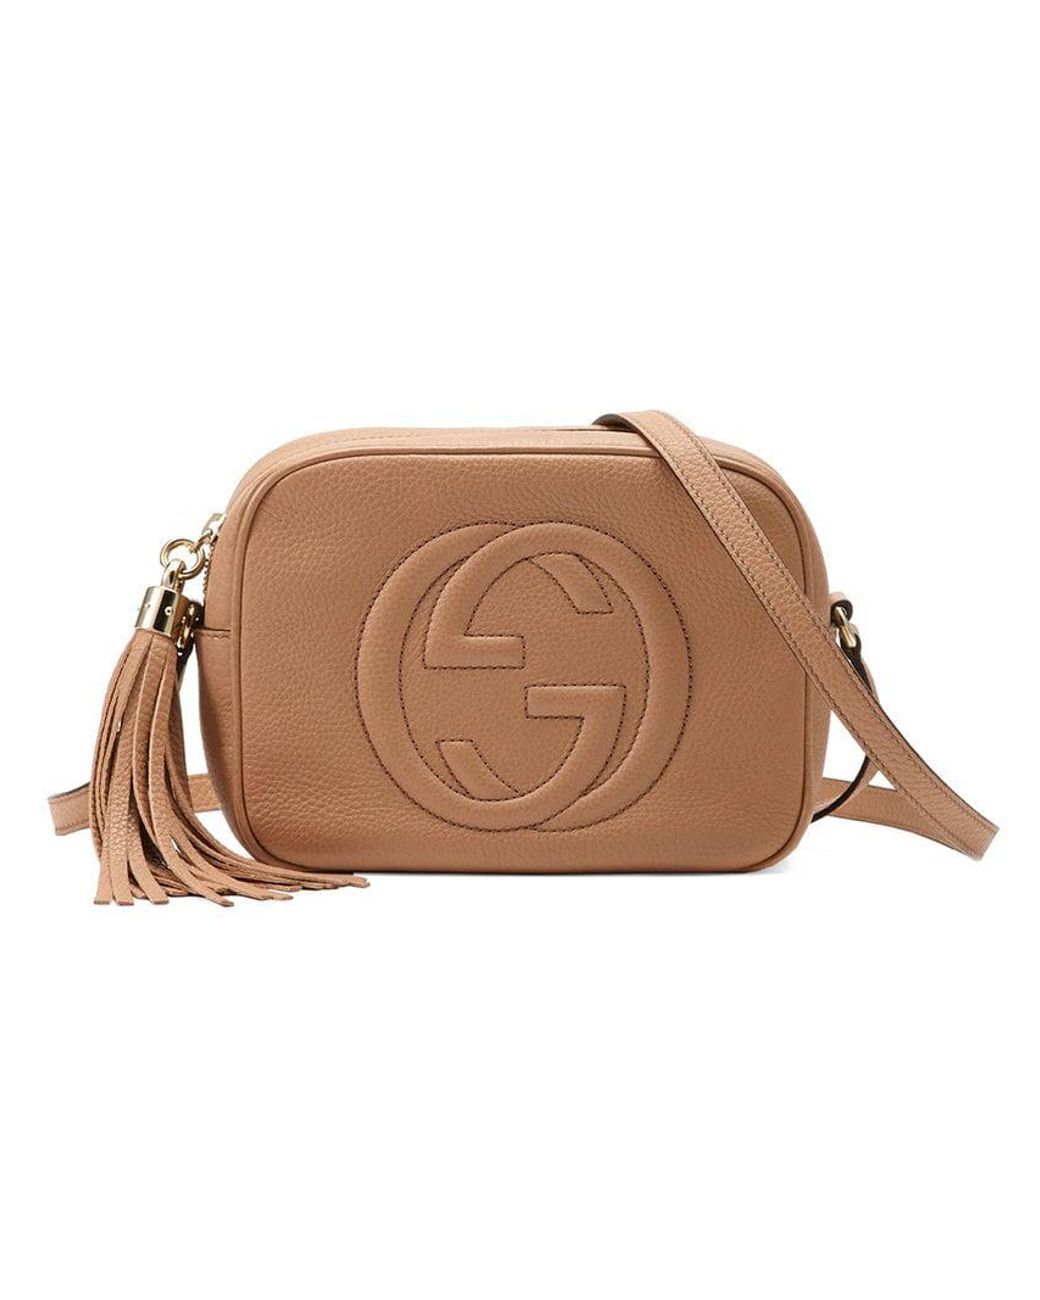 ee3477a292c Gucci Soho Small Leather Disco Bag - Save 4% - Lyst